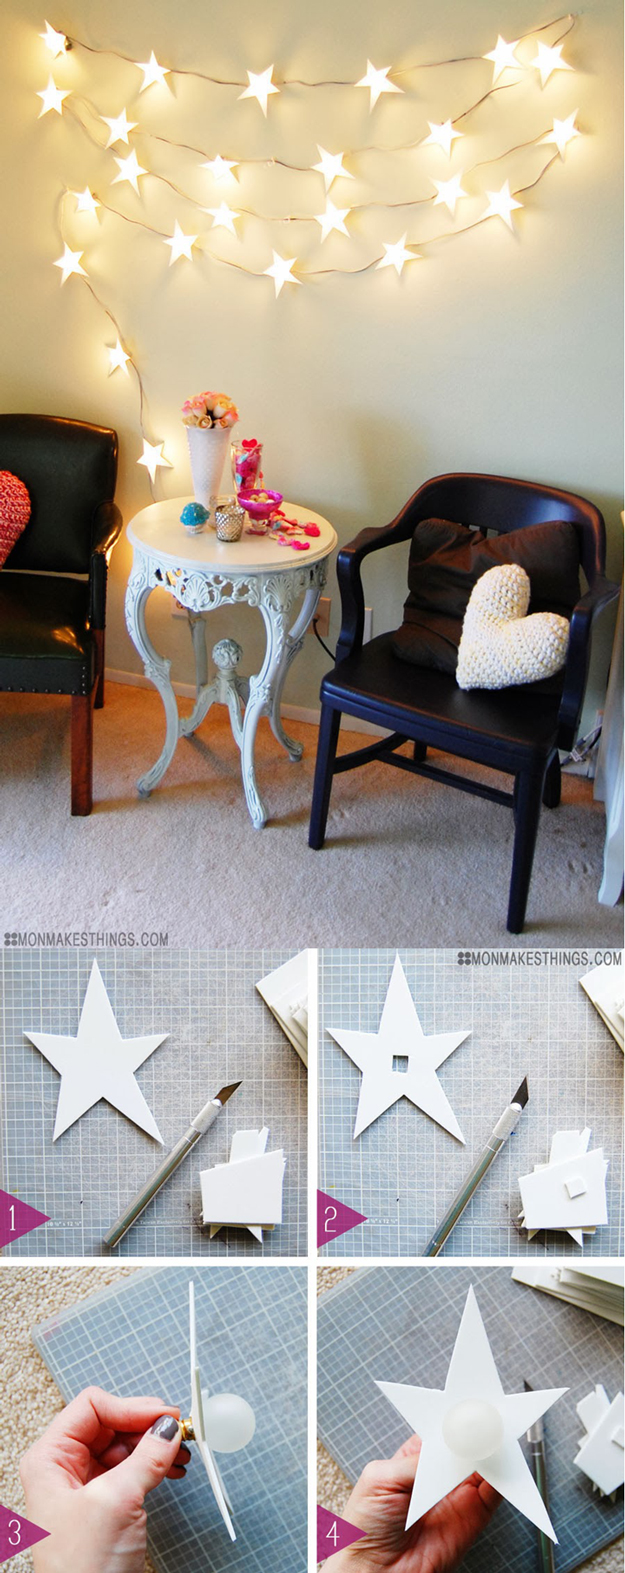 Awesome DIY String Light Ideas DIY Projects For Teens - Star lights in bedroom